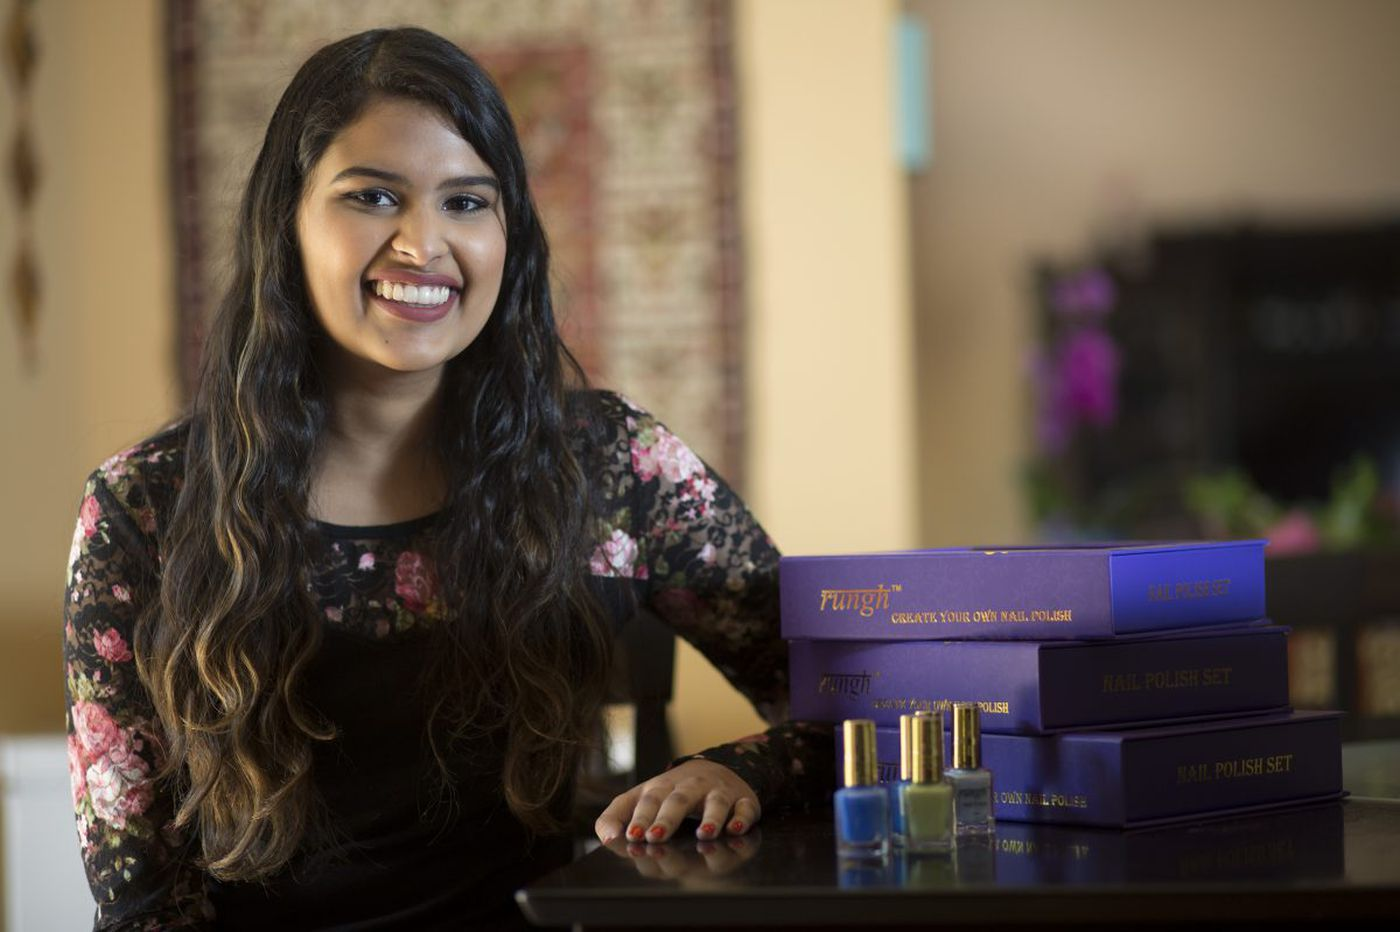 `I'm just a makeup nerd,' says a Temple student with a DIY nail-polish business